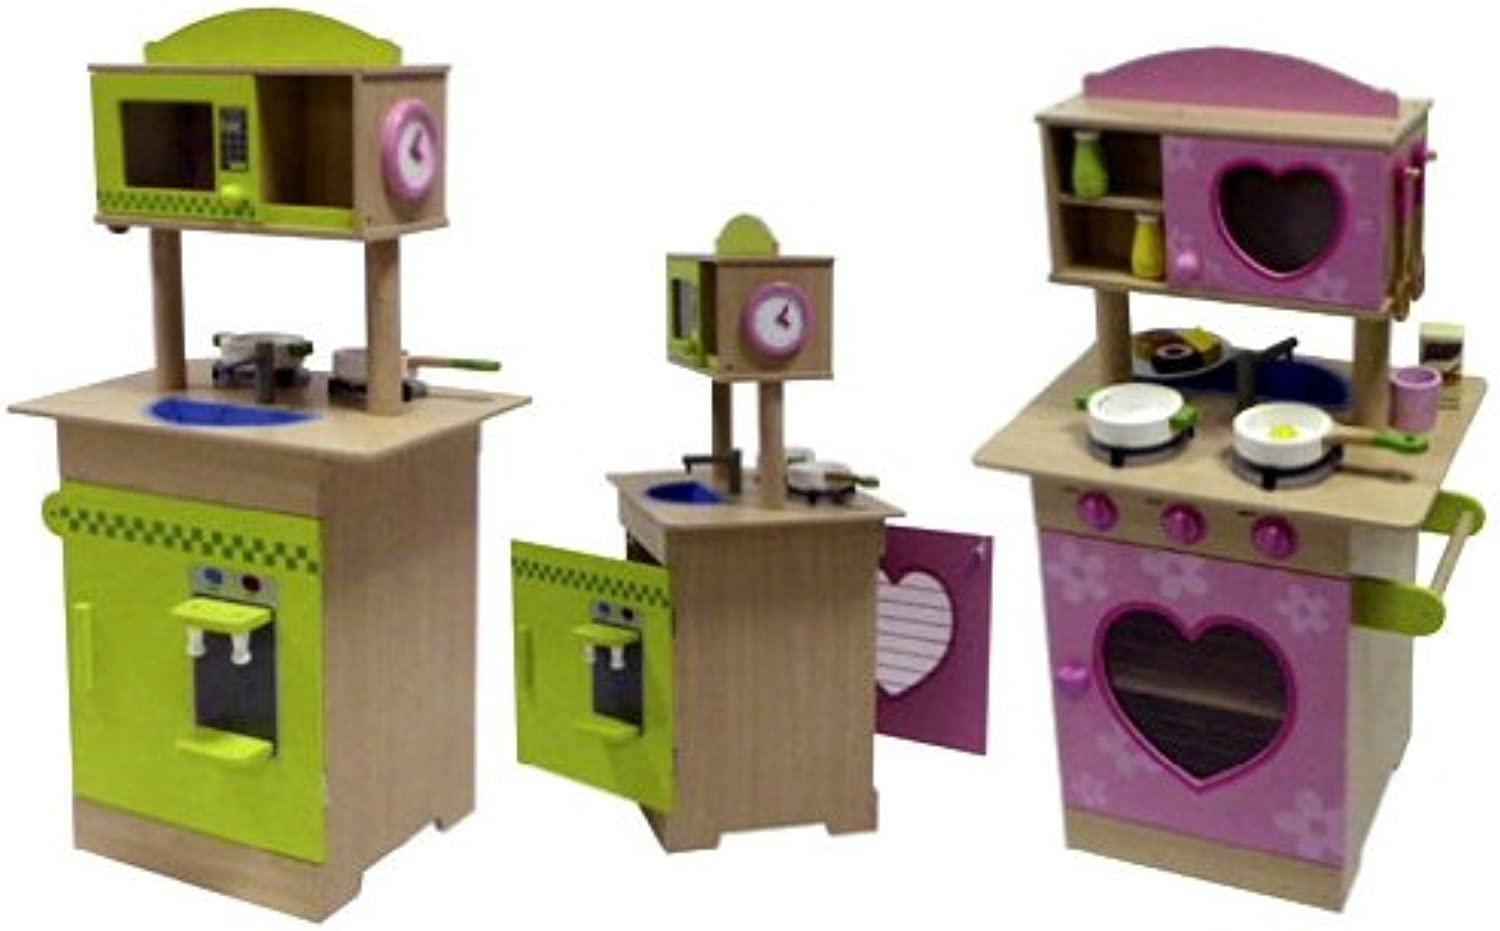 Siva Toys 261838 Siva ''Kitchen Wood Pink Green with Accessories '', Multi Colour